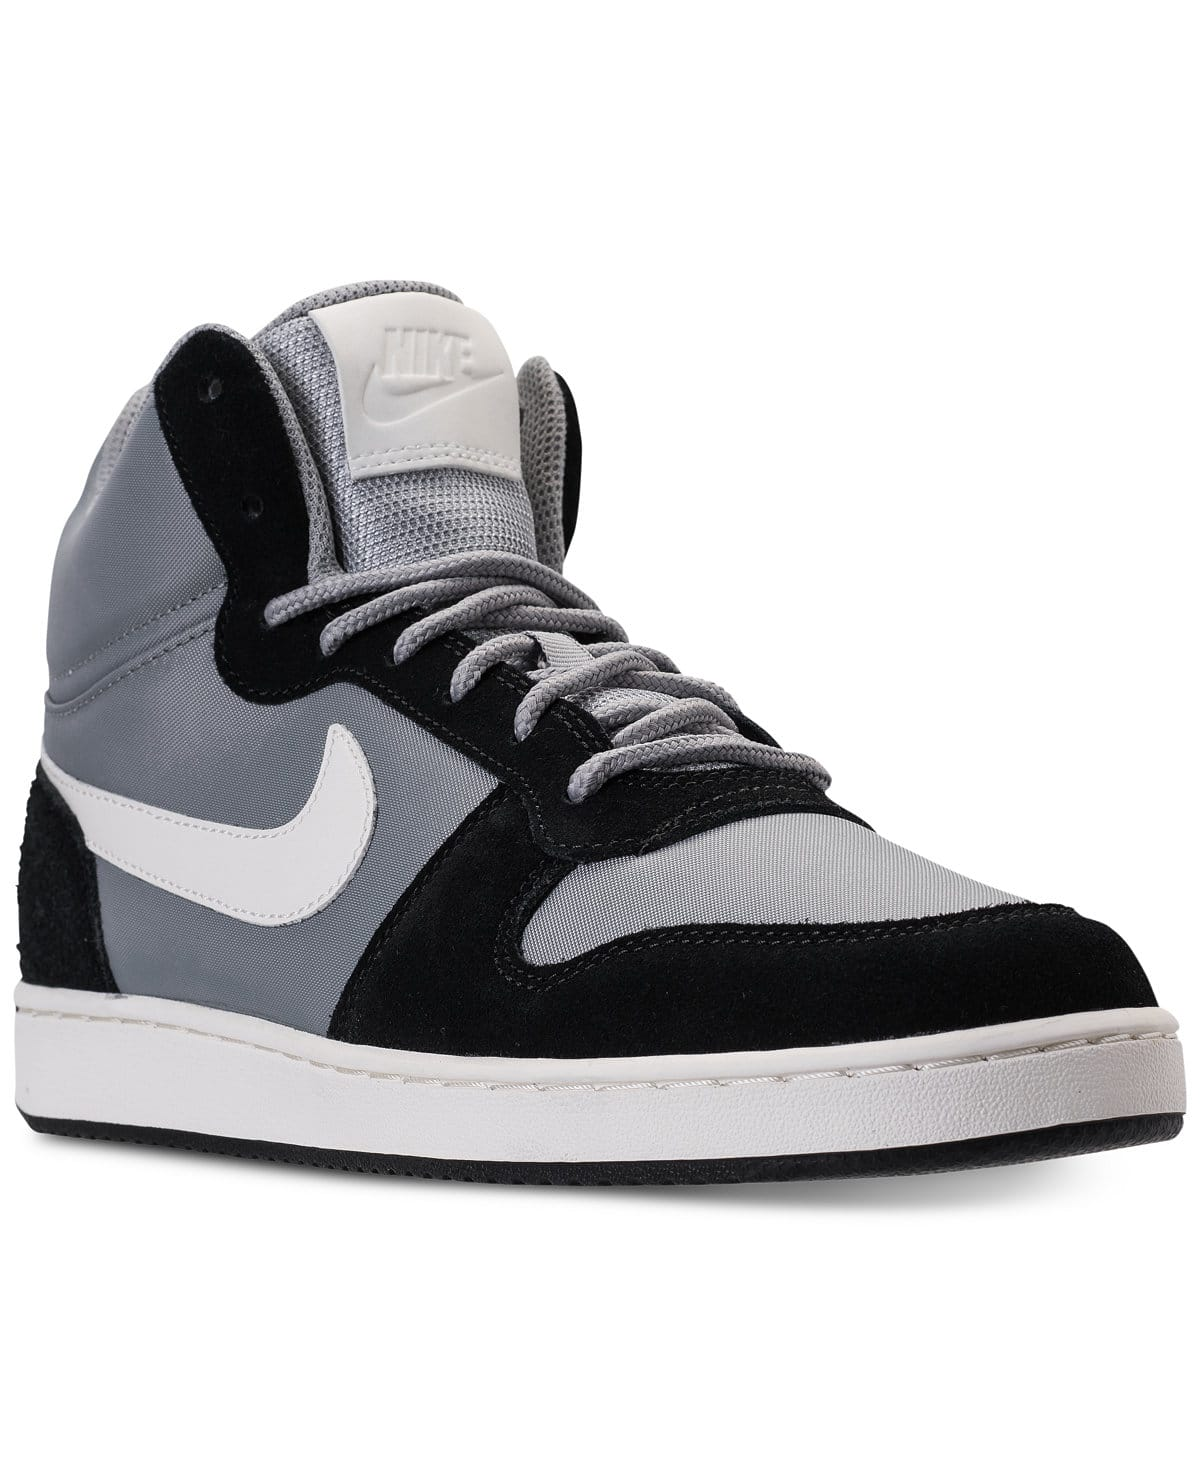 Nike Men's Court Borough Mid Casual Sneakers $22.50 + $4 shipping